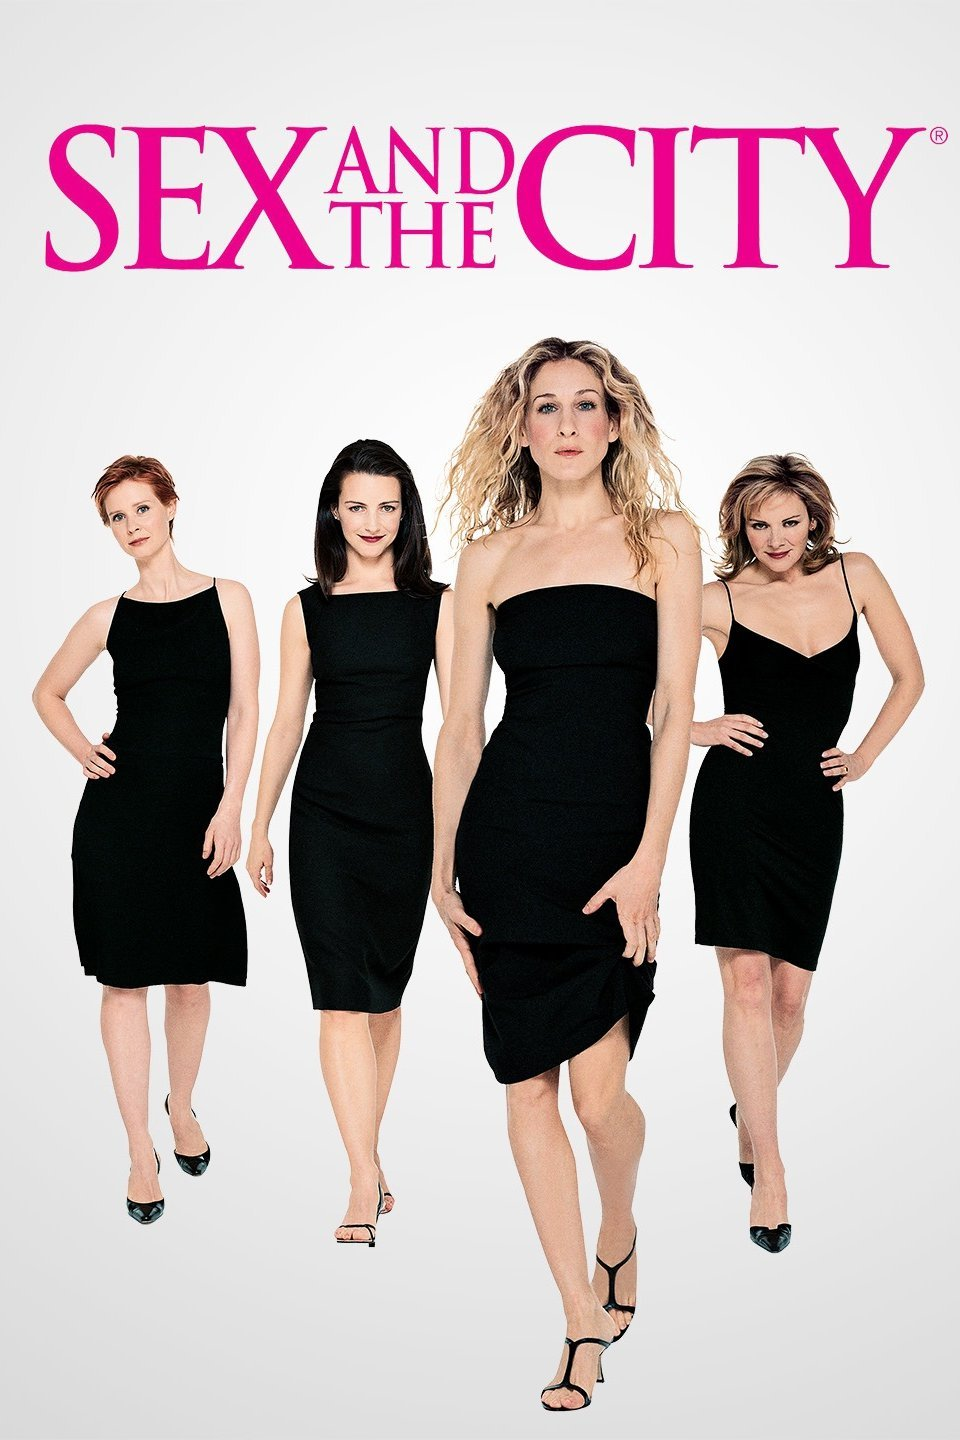 Sex and the city movie events